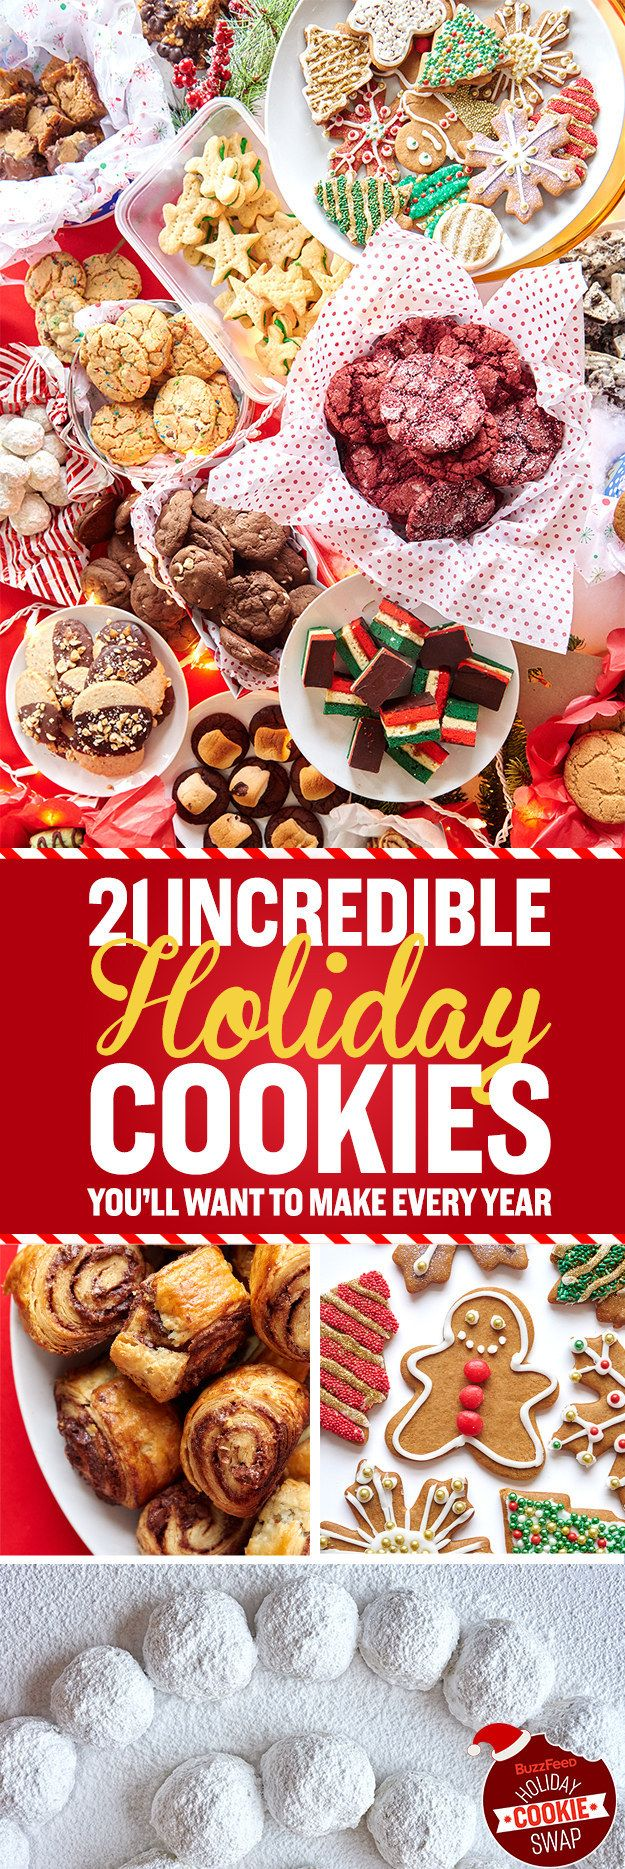 We asked you to post your favorite holiday cookie recipes in the comments of this BuzzFeed post a few weeks ago and on Facebook — a ~virtual cookie swap~ of sorts.